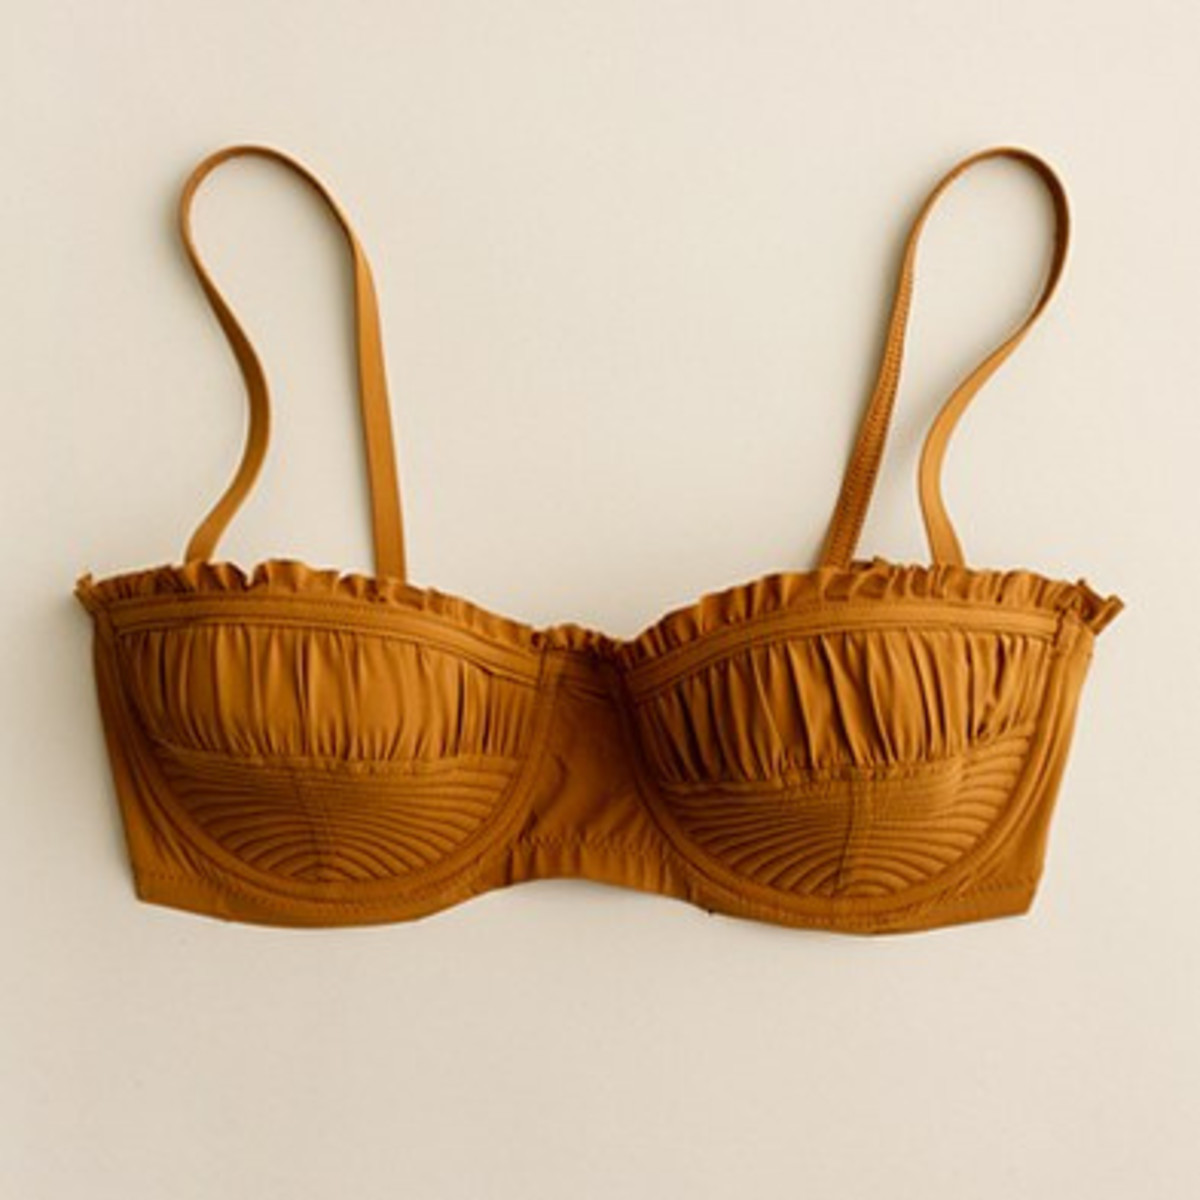 A Bra with Underwires